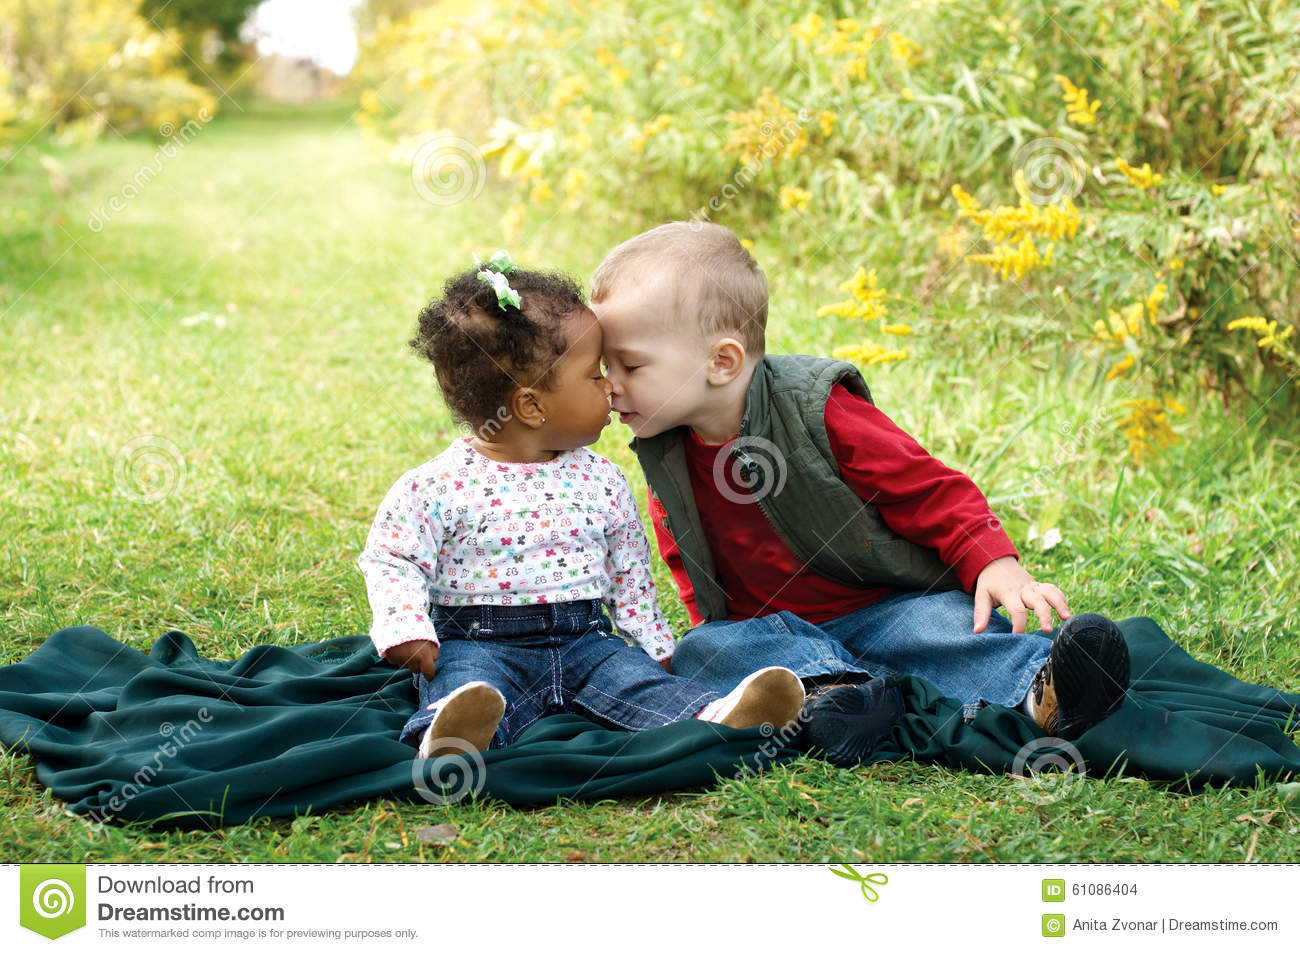 interracial toddlers showing affection fight racism stock